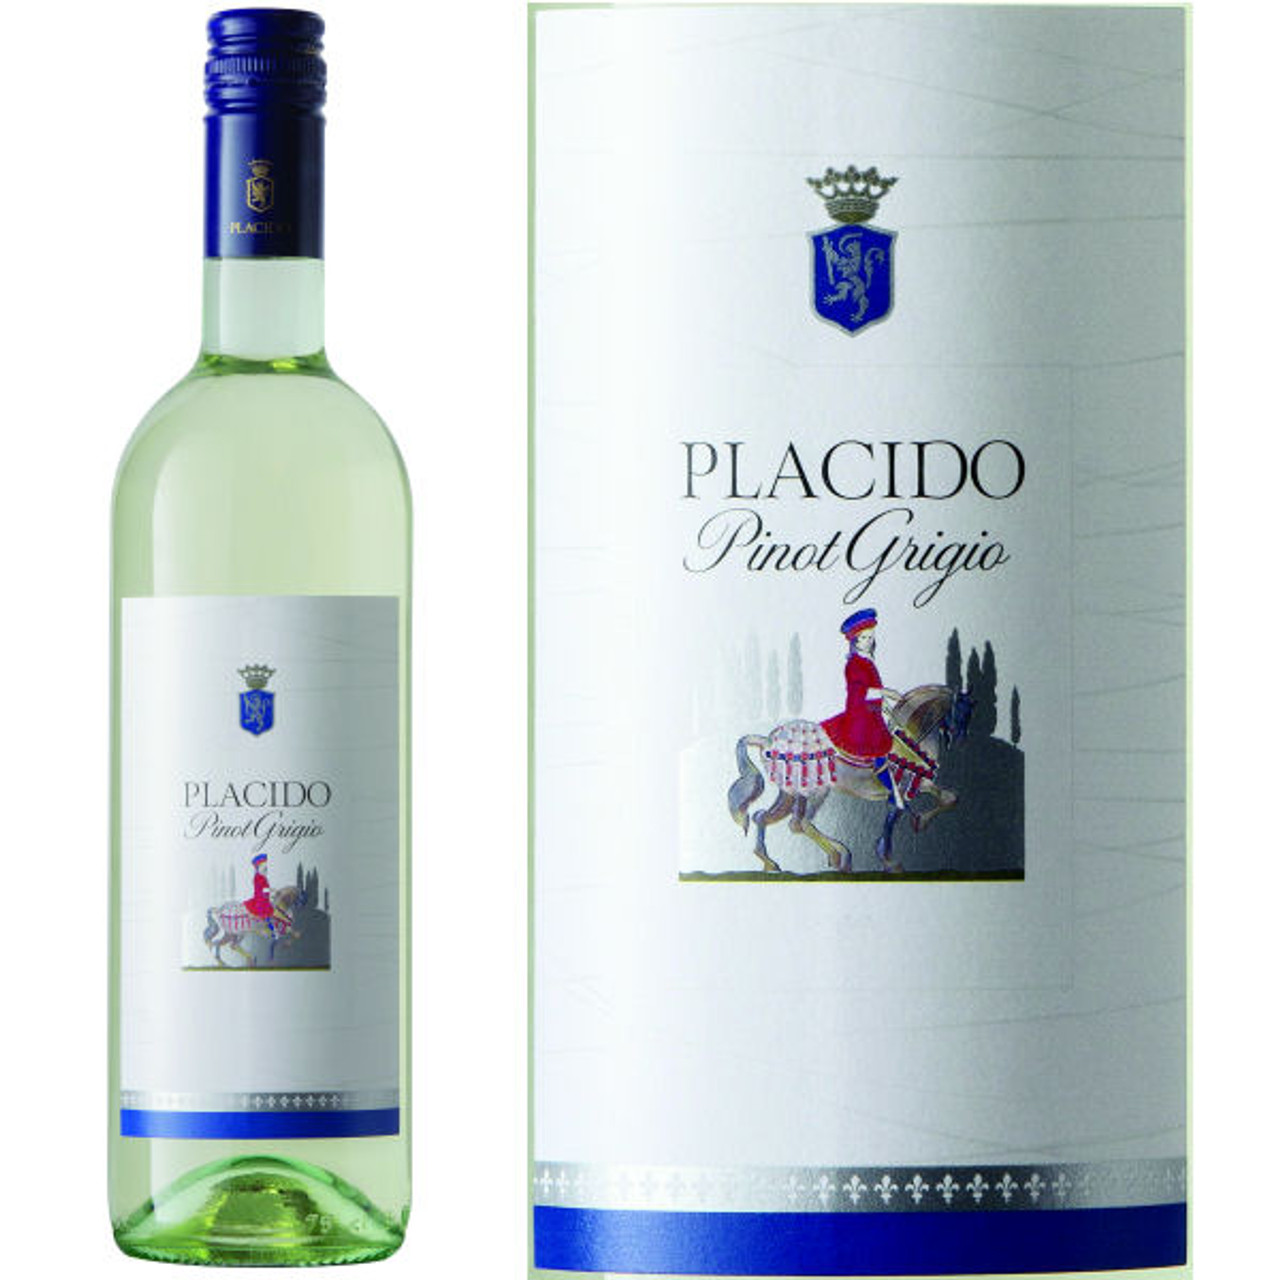 Placido Selection Pinot Grigio